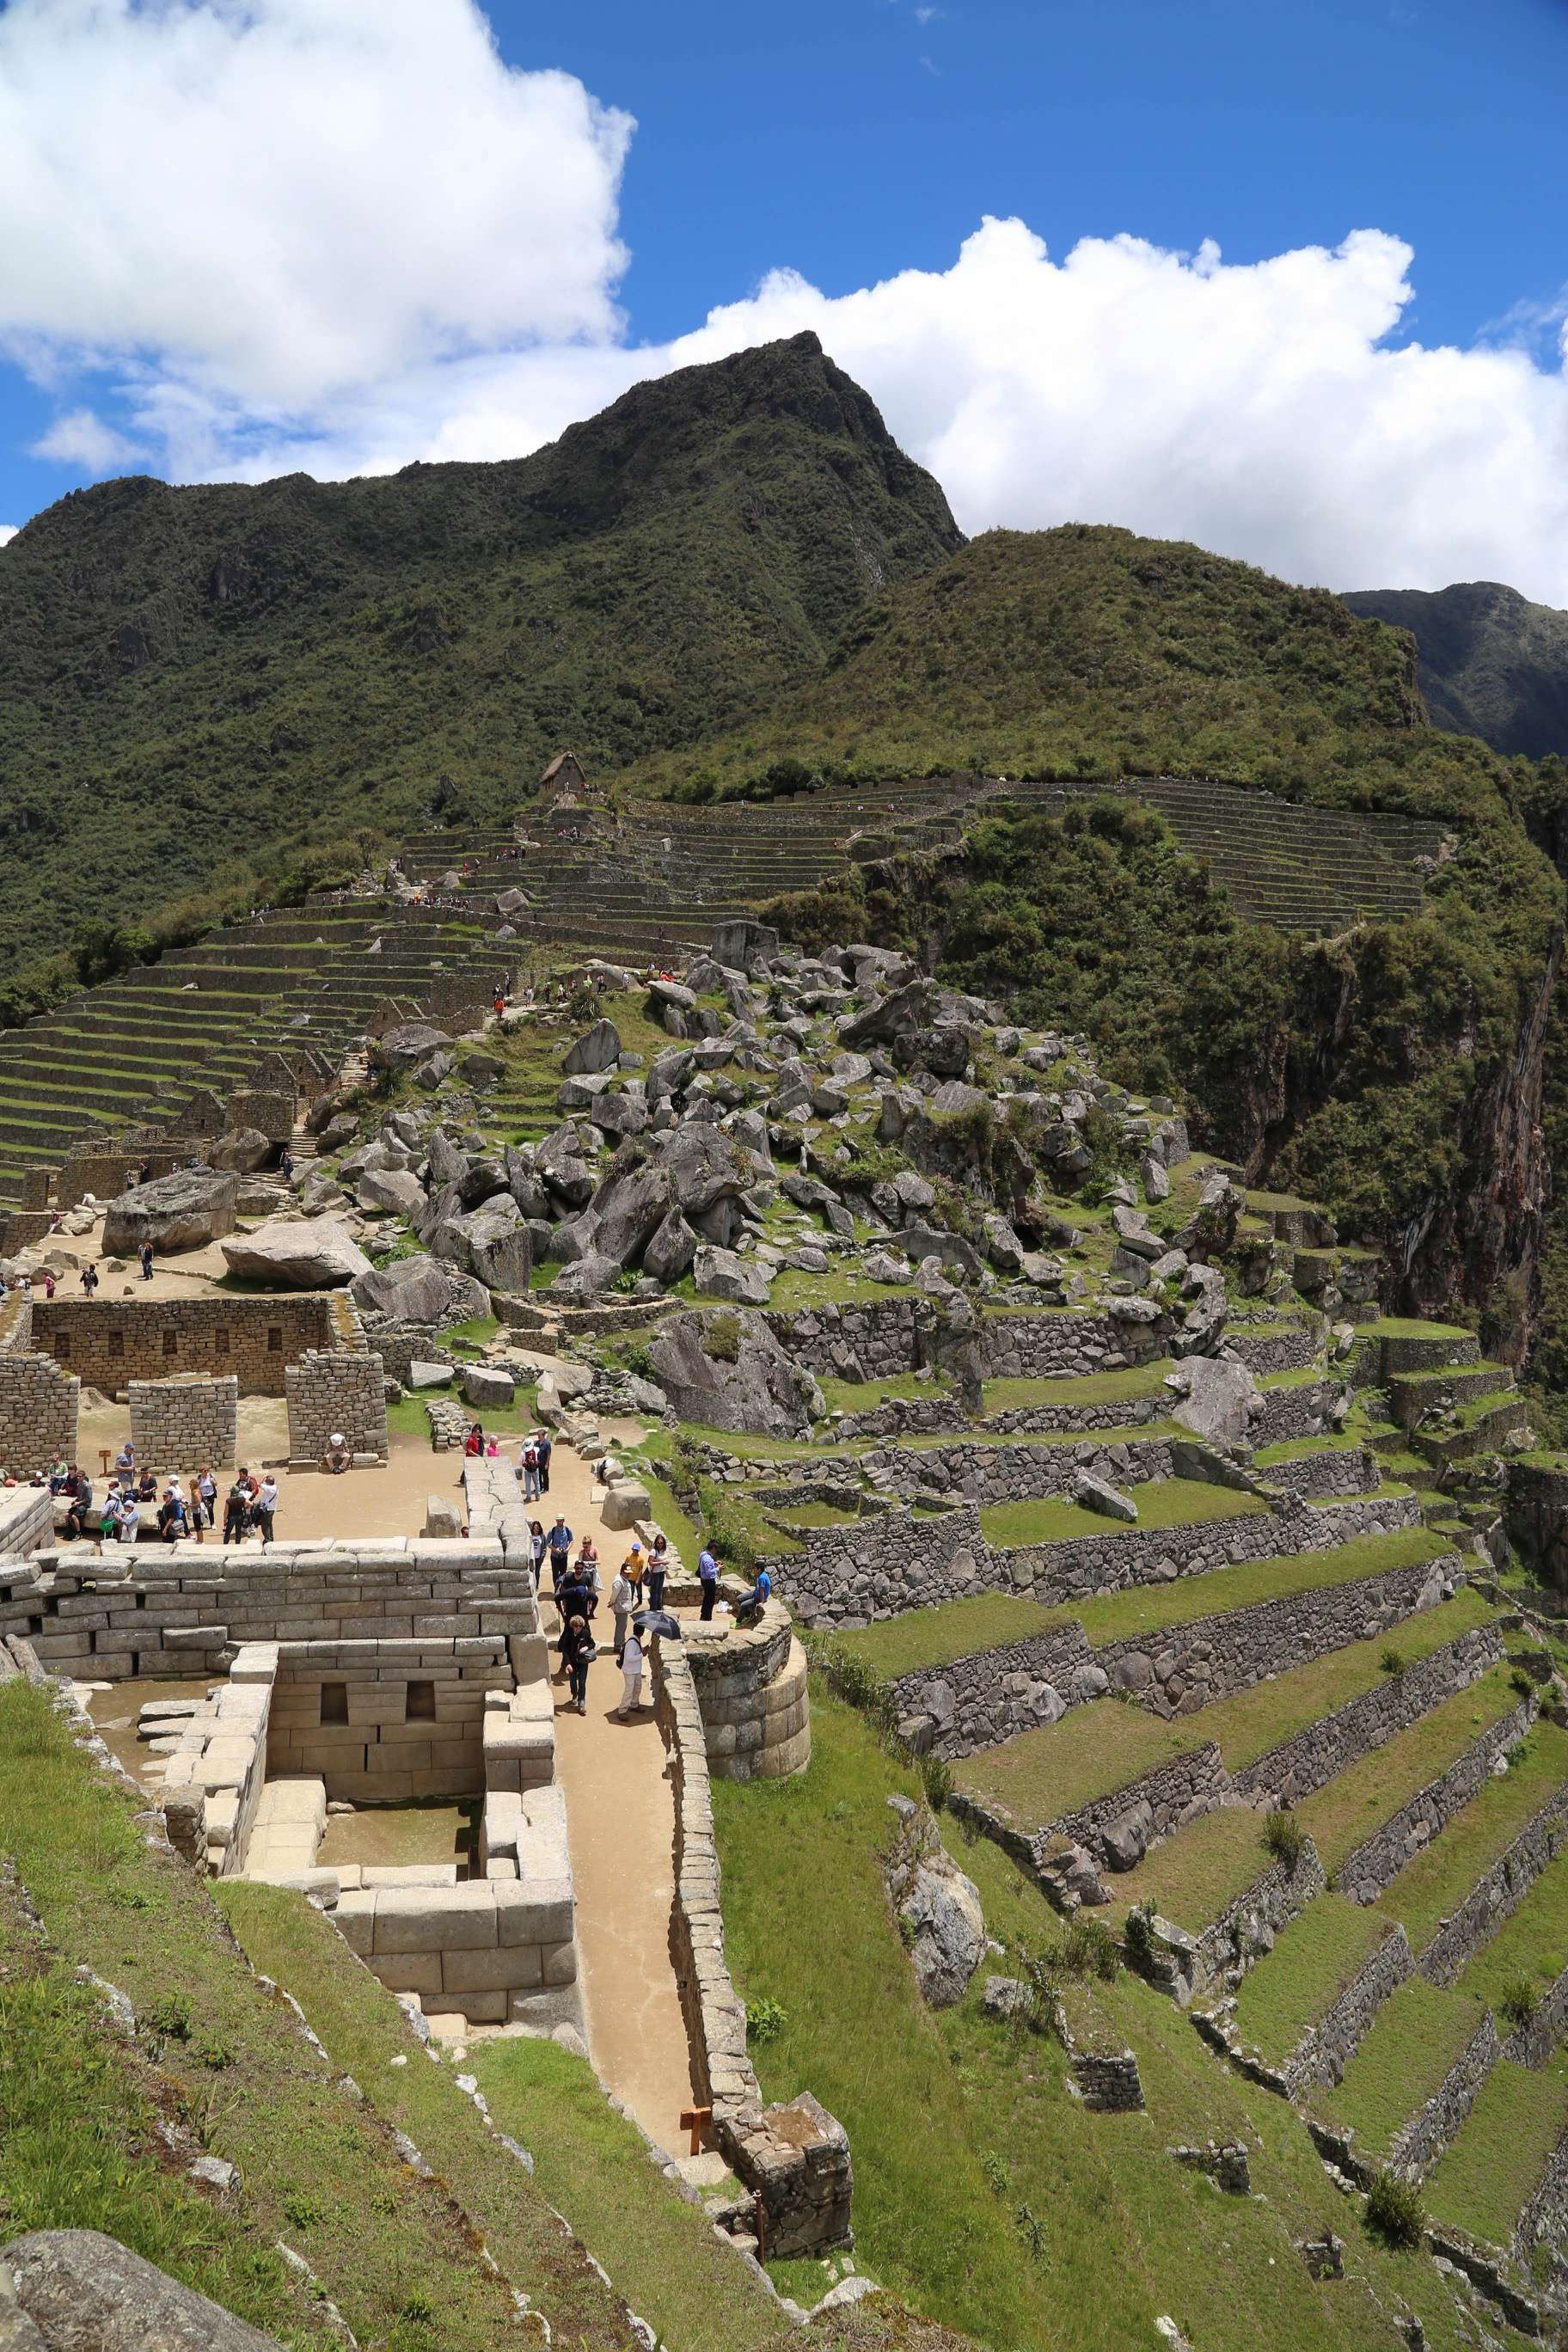 The Incas were masterful builders and they used no mortar or cement to secure the massive boulders in place.